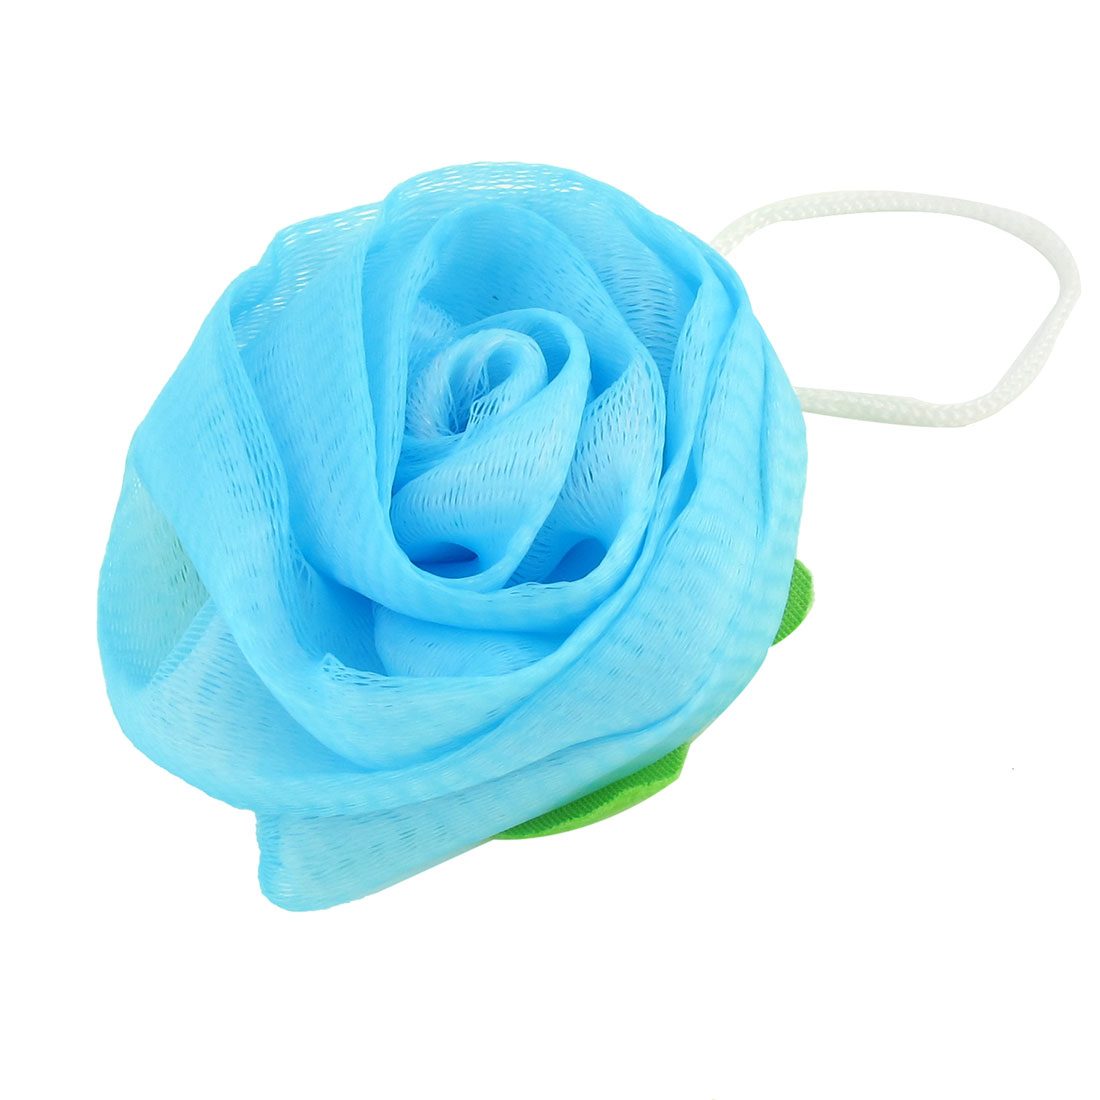 Bathroom Light Blue Rose Design Mesh Bath Sponge Shower Pouf